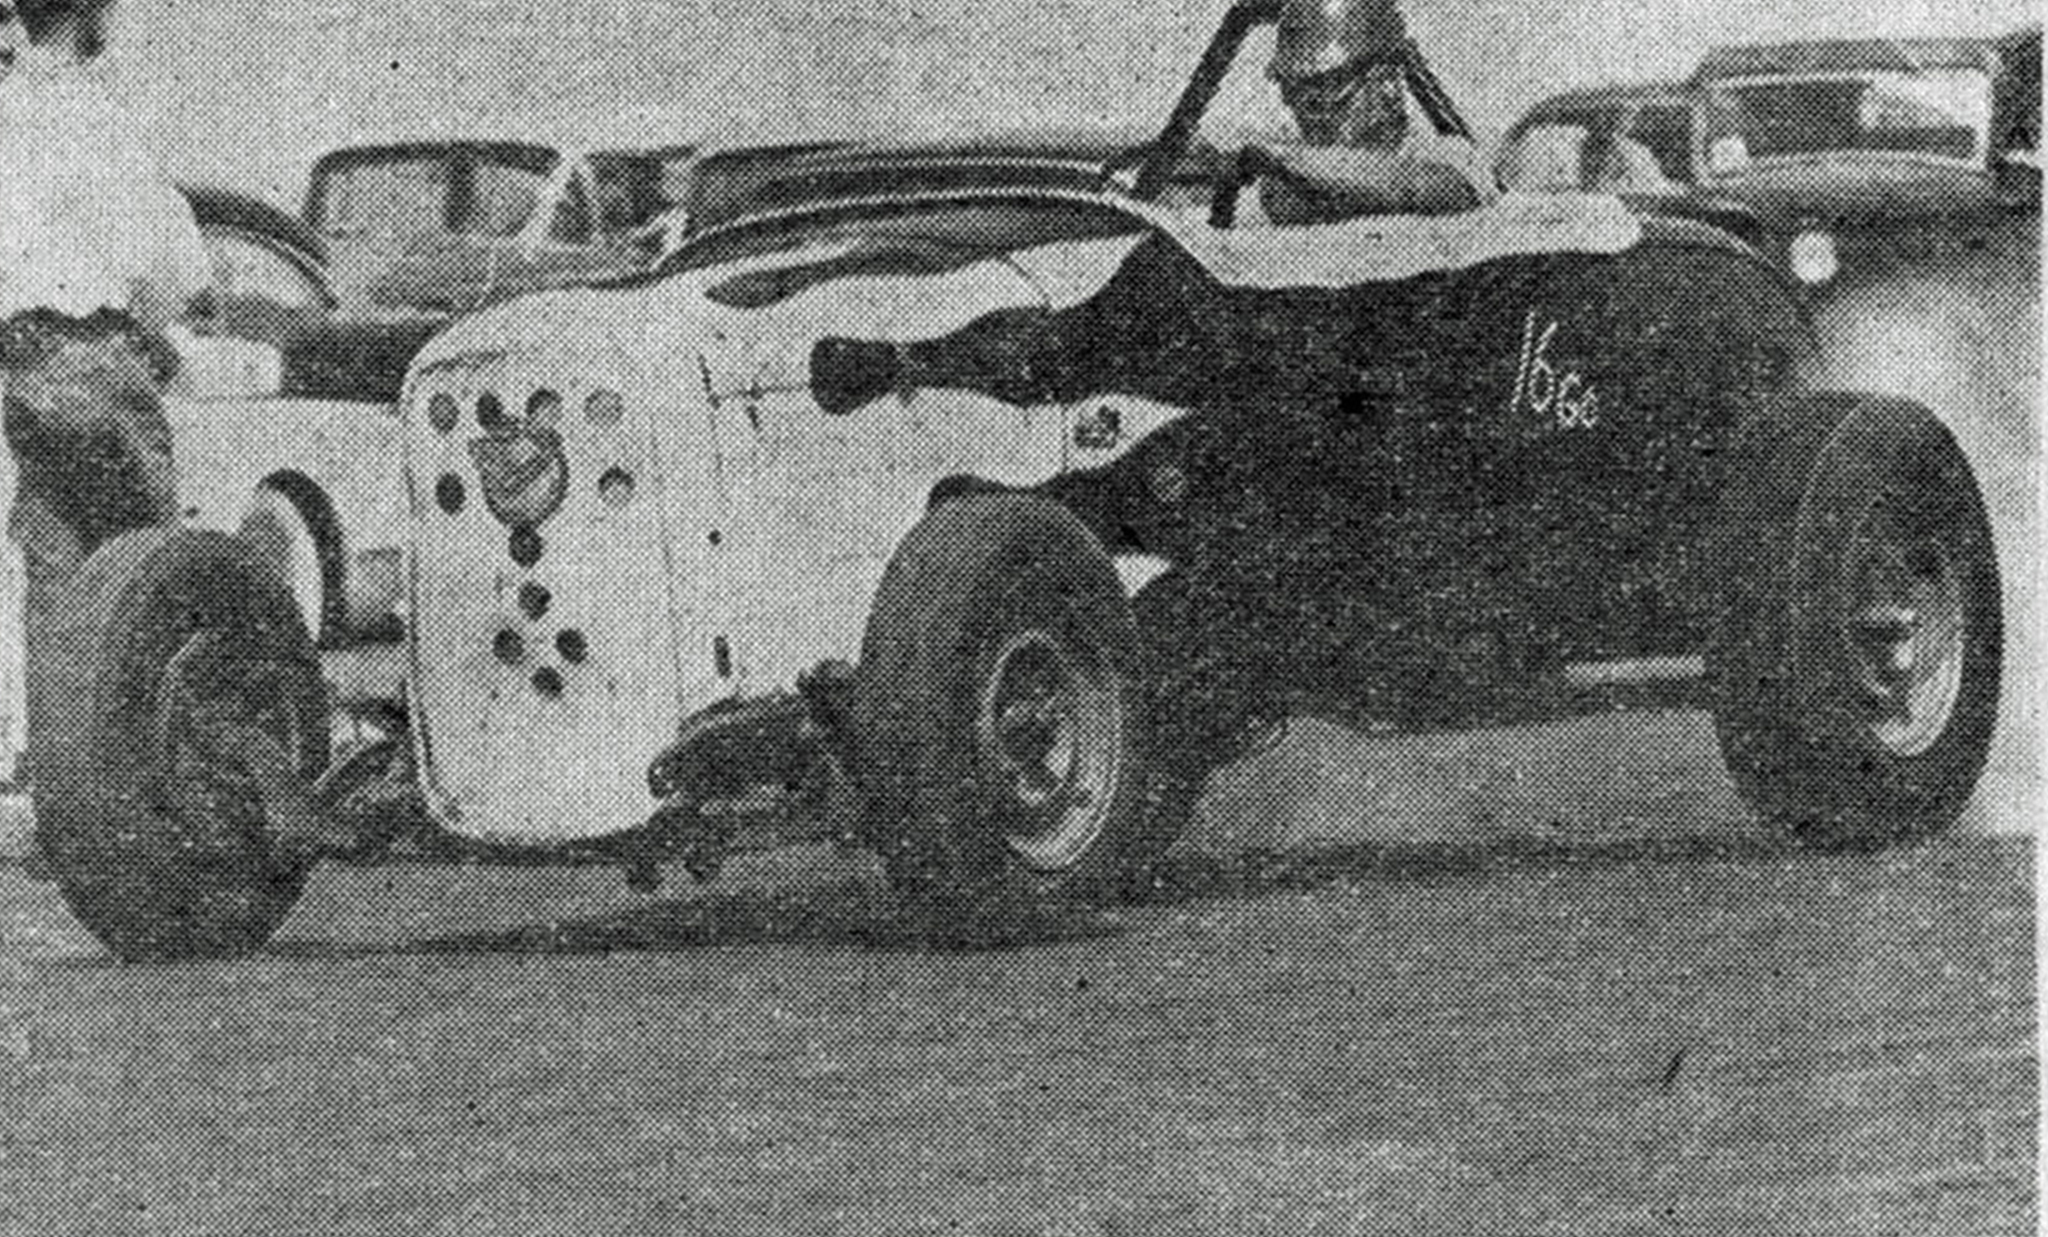 """Drag News ran a photo of the roadster in 1956 with Willie Borsch at the wheel. Now owned by Jim Harrell, the car was in transition—still sporting the trademark Berardini flames, but now powered by a Chrysler overhead mill instead of the flathead. The caption read, """"Open Gas O.H. entry of Borsch & Harrell blasted class record at Santa Ana March 16 with torrid run of 123.45. E.T. of 11.03 with 355 C.I. Chrysler."""""""